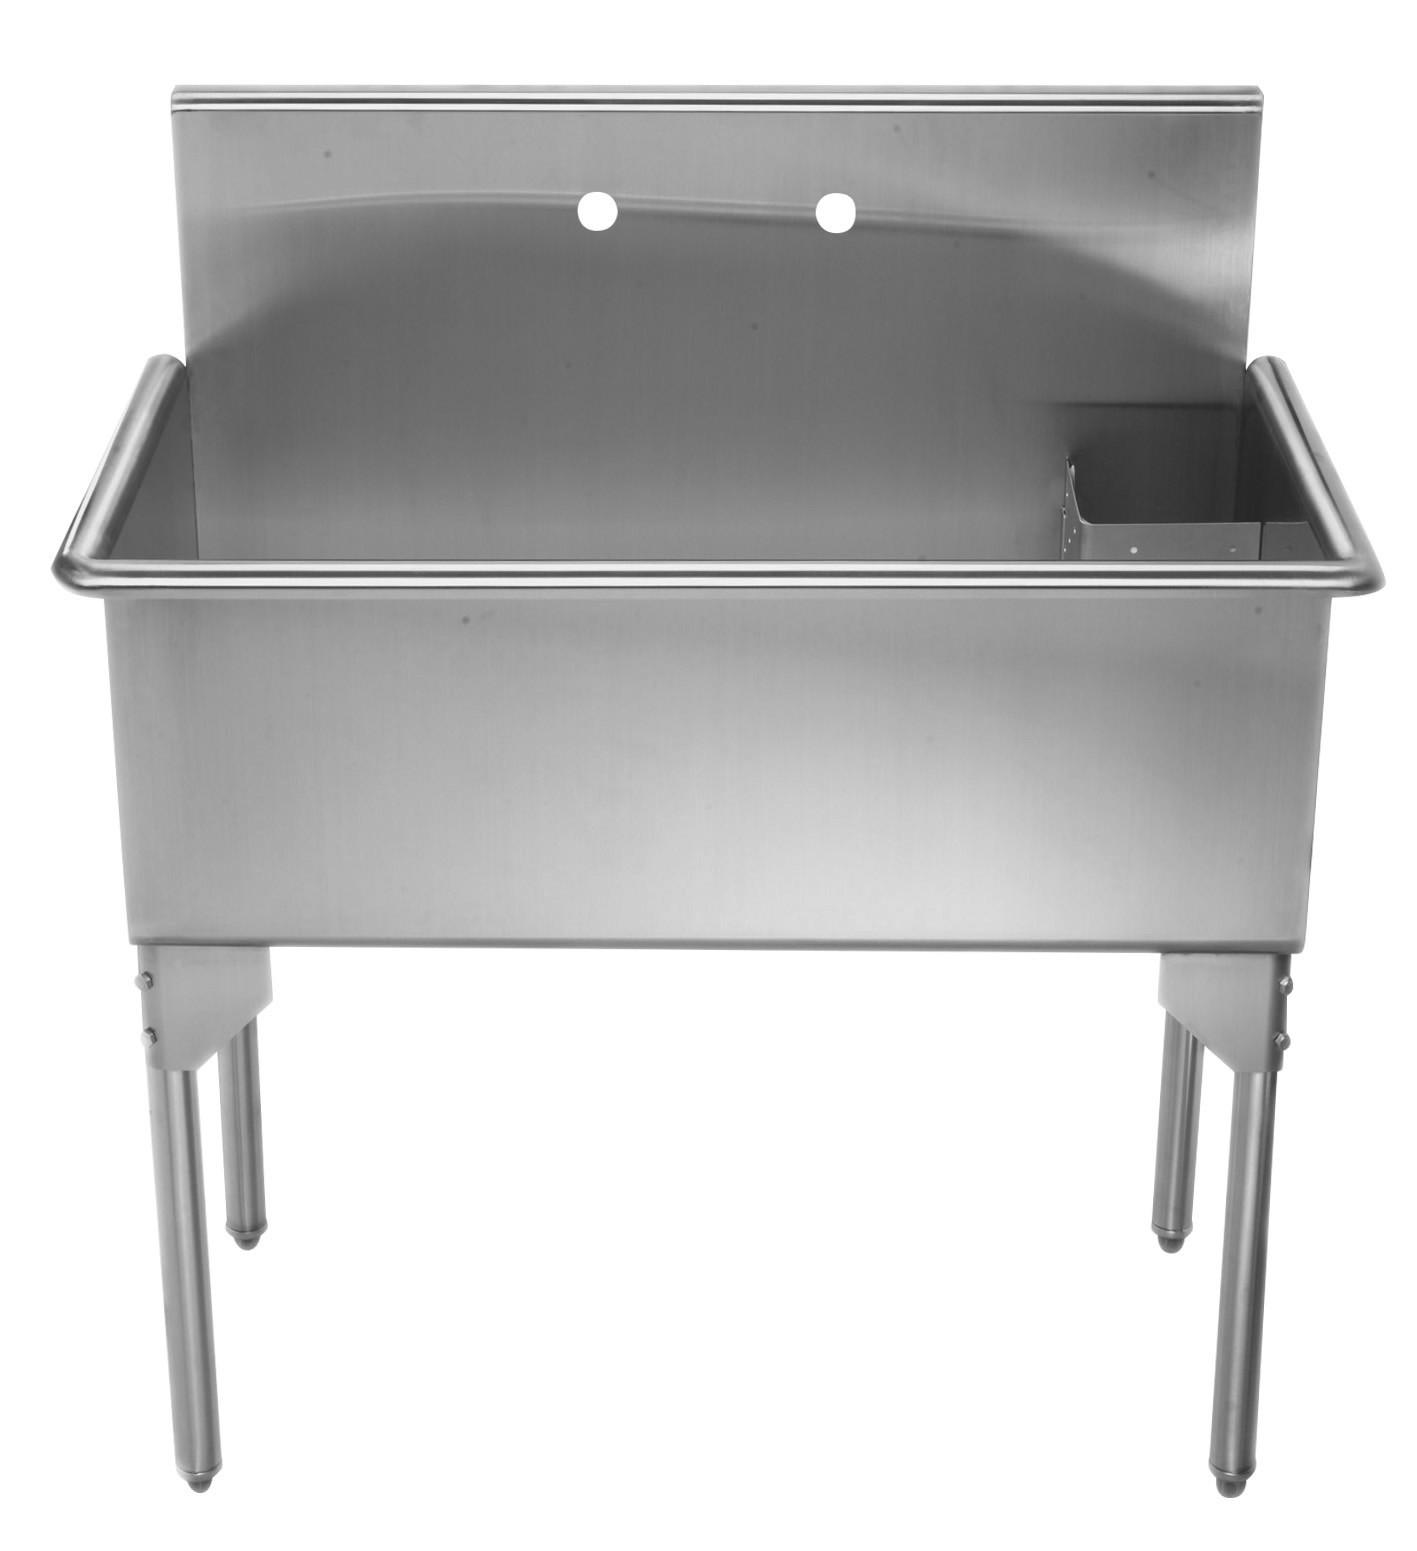 "Whitehaus WHLS3618-NP 36"" Brushed Stainless Steel Freestanding Utility Sink"